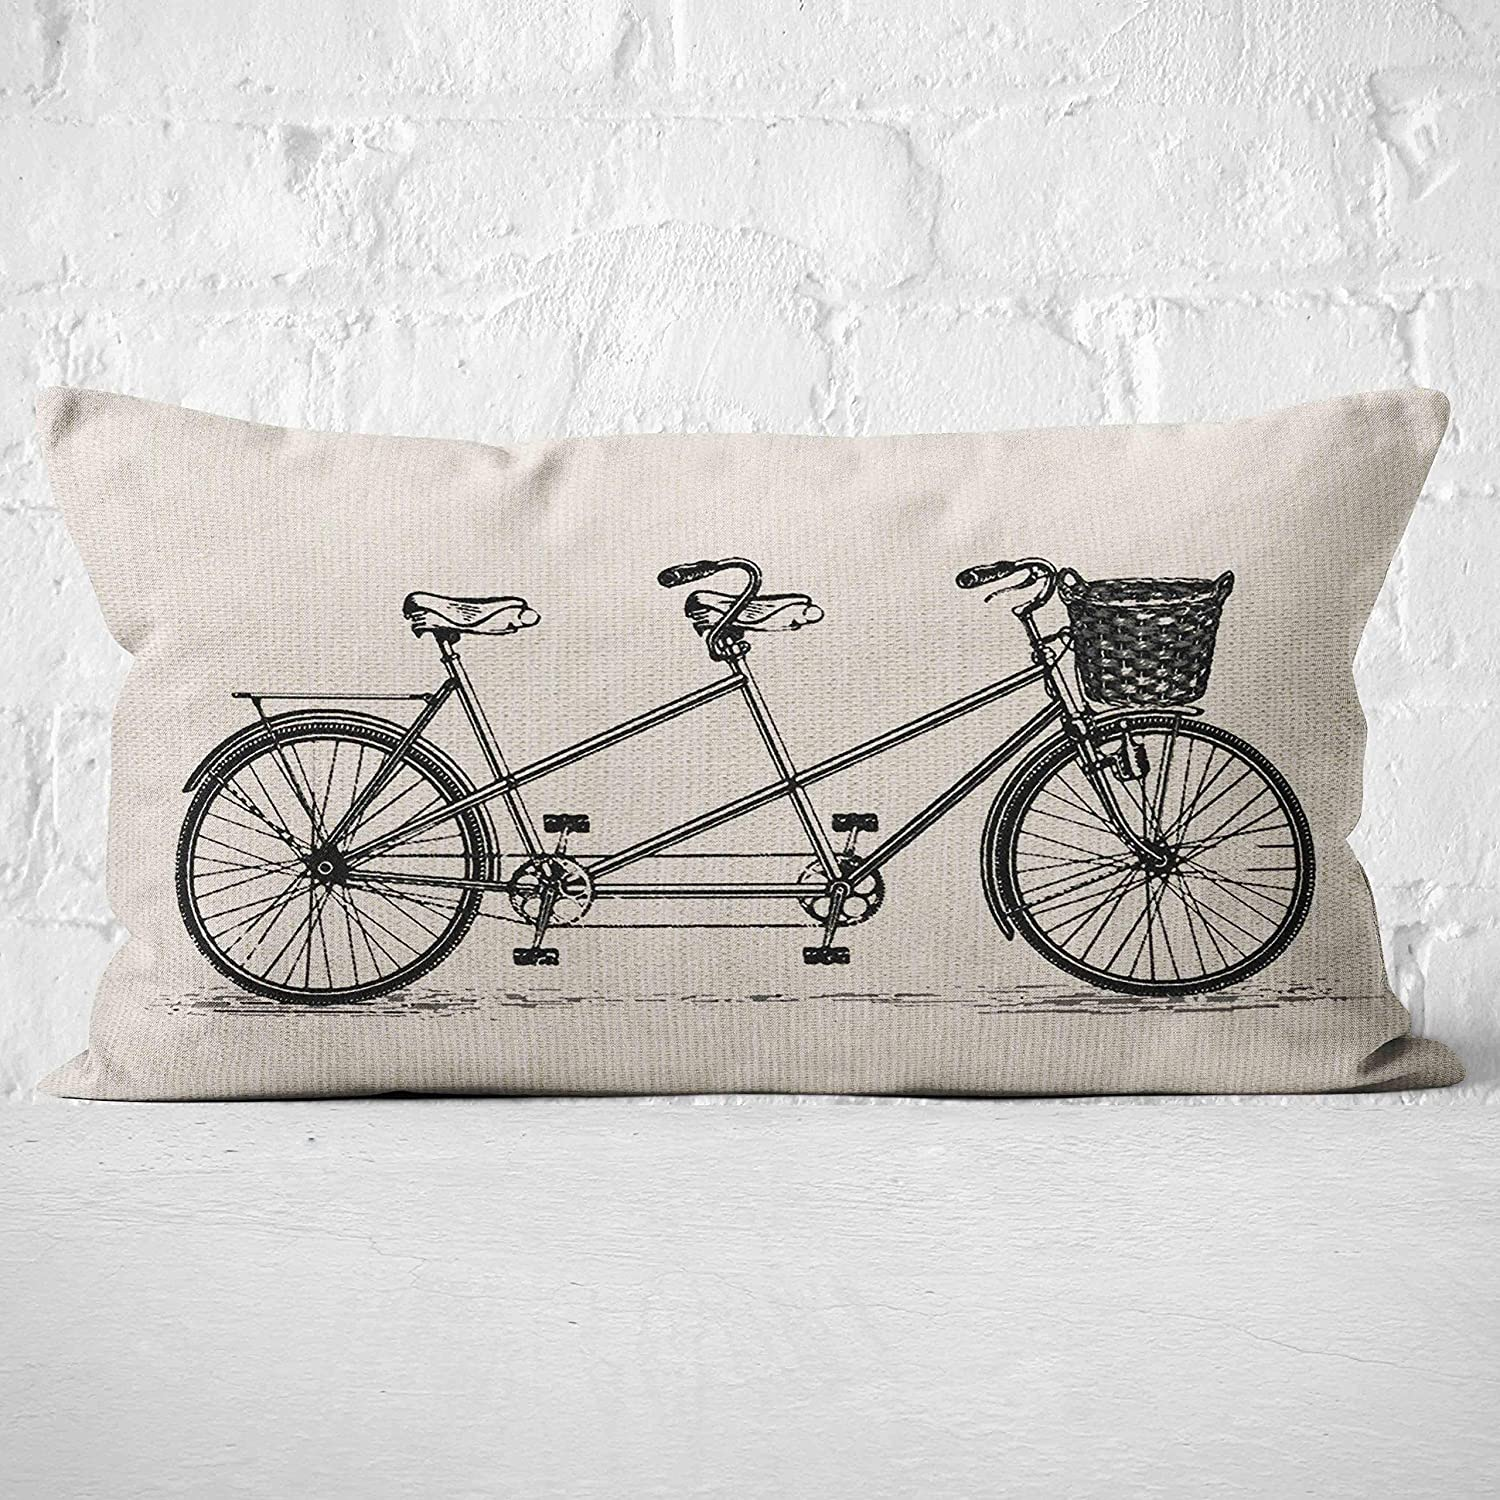 Mancheng-zi Vintage Tandem Bike Throw Pillow Cover, Gift Love Couple Wedding, Gift for Couples, Anniversary, Wedding, Engagement, Cushion Case for Sofa Bed Home Decor 20 x 12 Inch